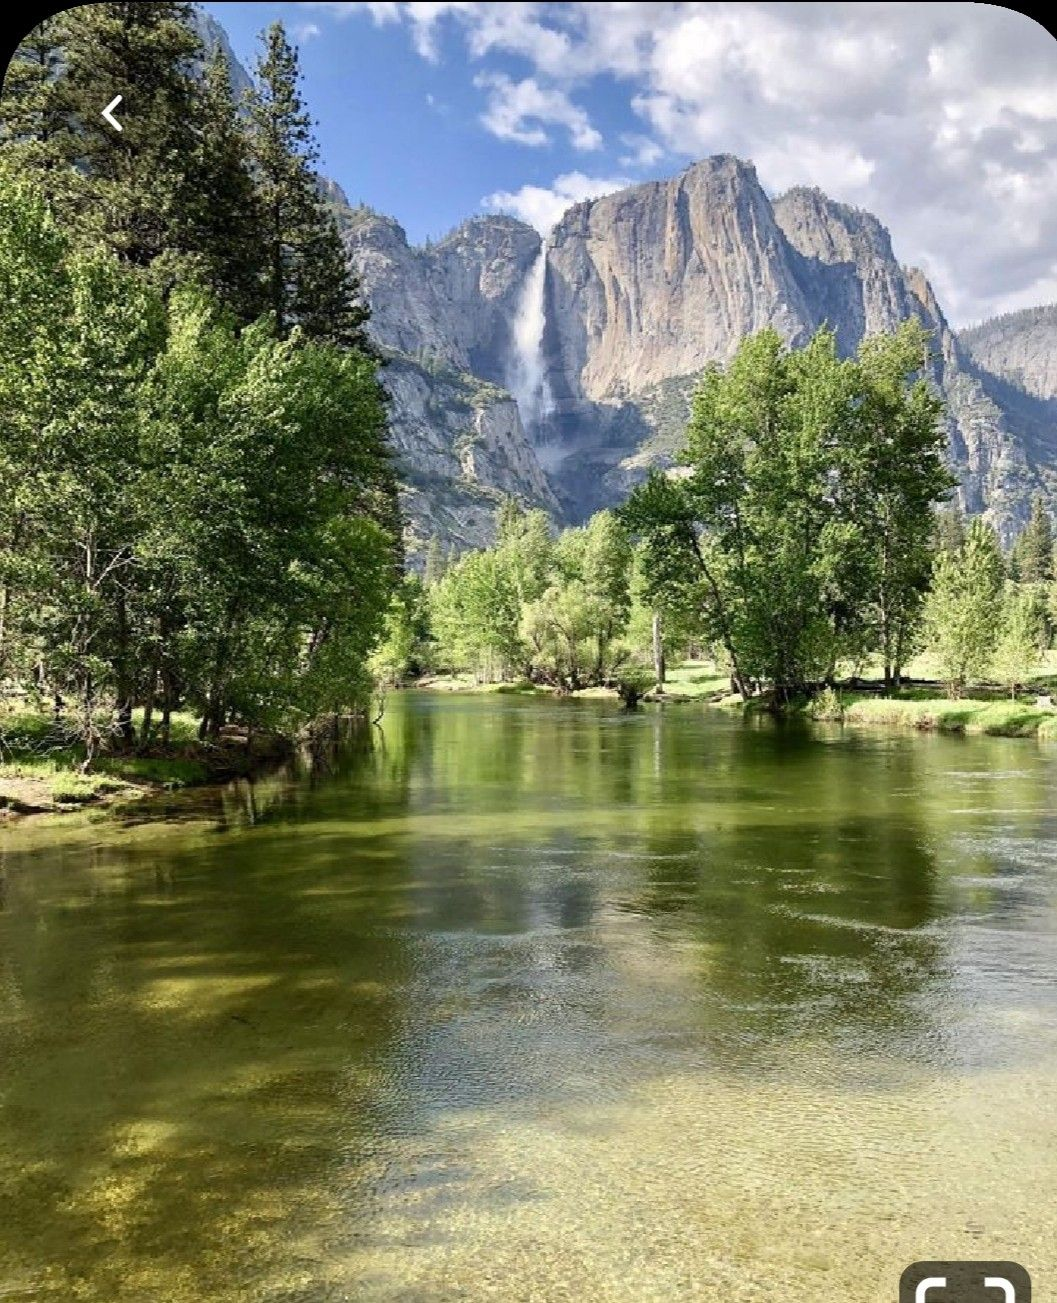 Pin By Mira Assaf On 綺麗 景色 In 2020 Nature Photography Landscape Photos Yosemite Valley